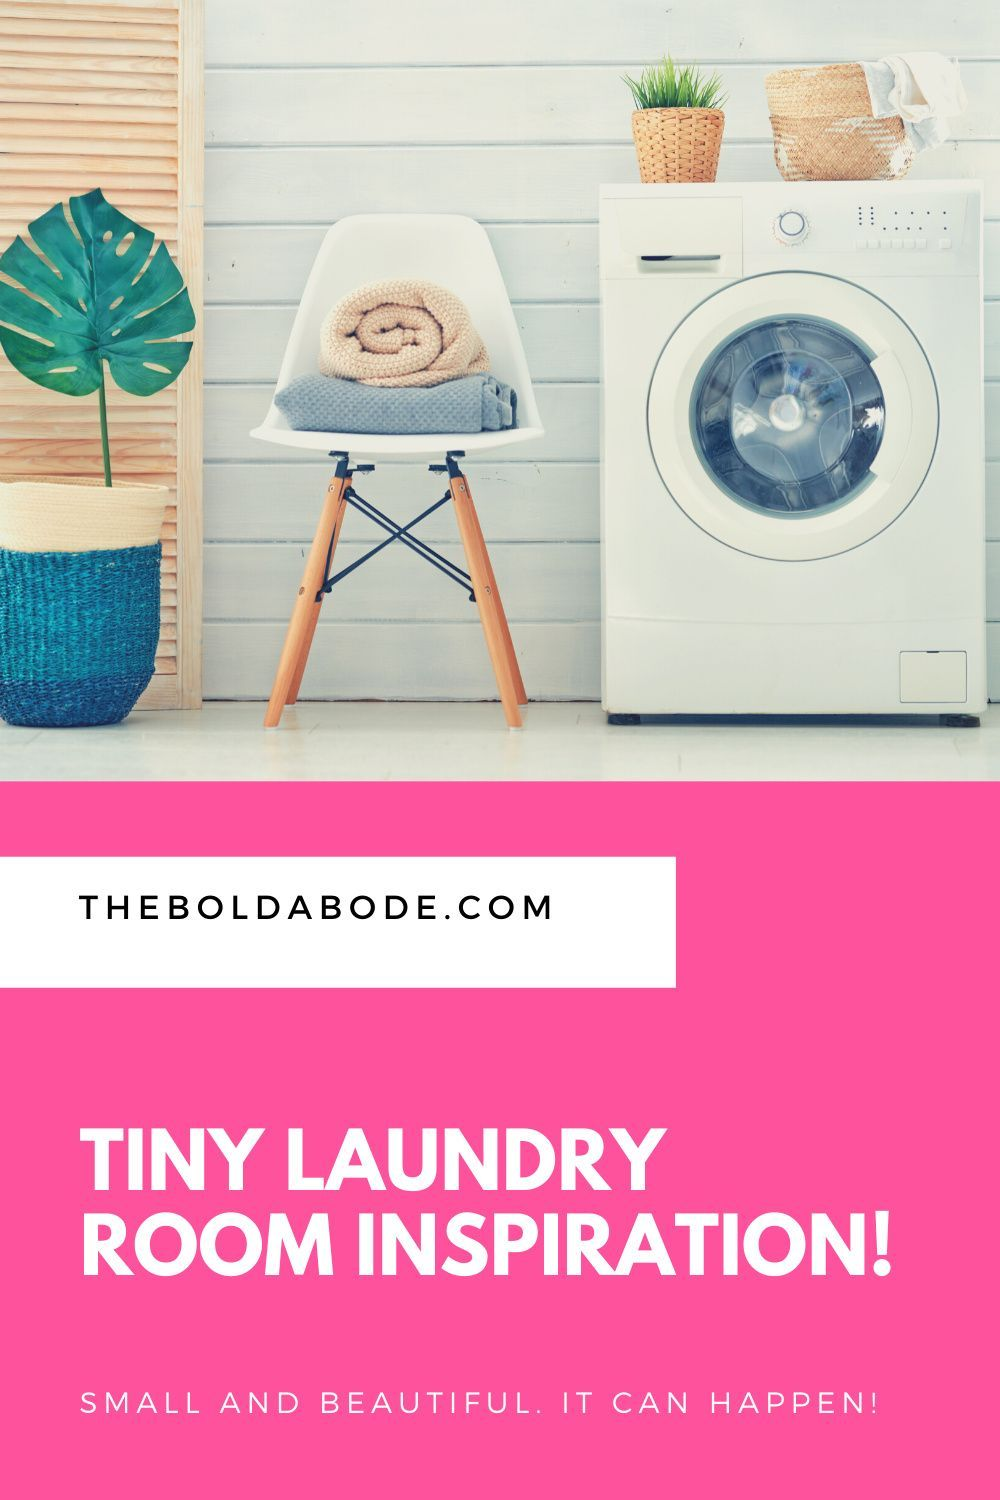 tiny laundry room inspiration in 2020 tiny laundry rooms on effectively laundry room decoration ideas easy ideas to inspire you id=58621